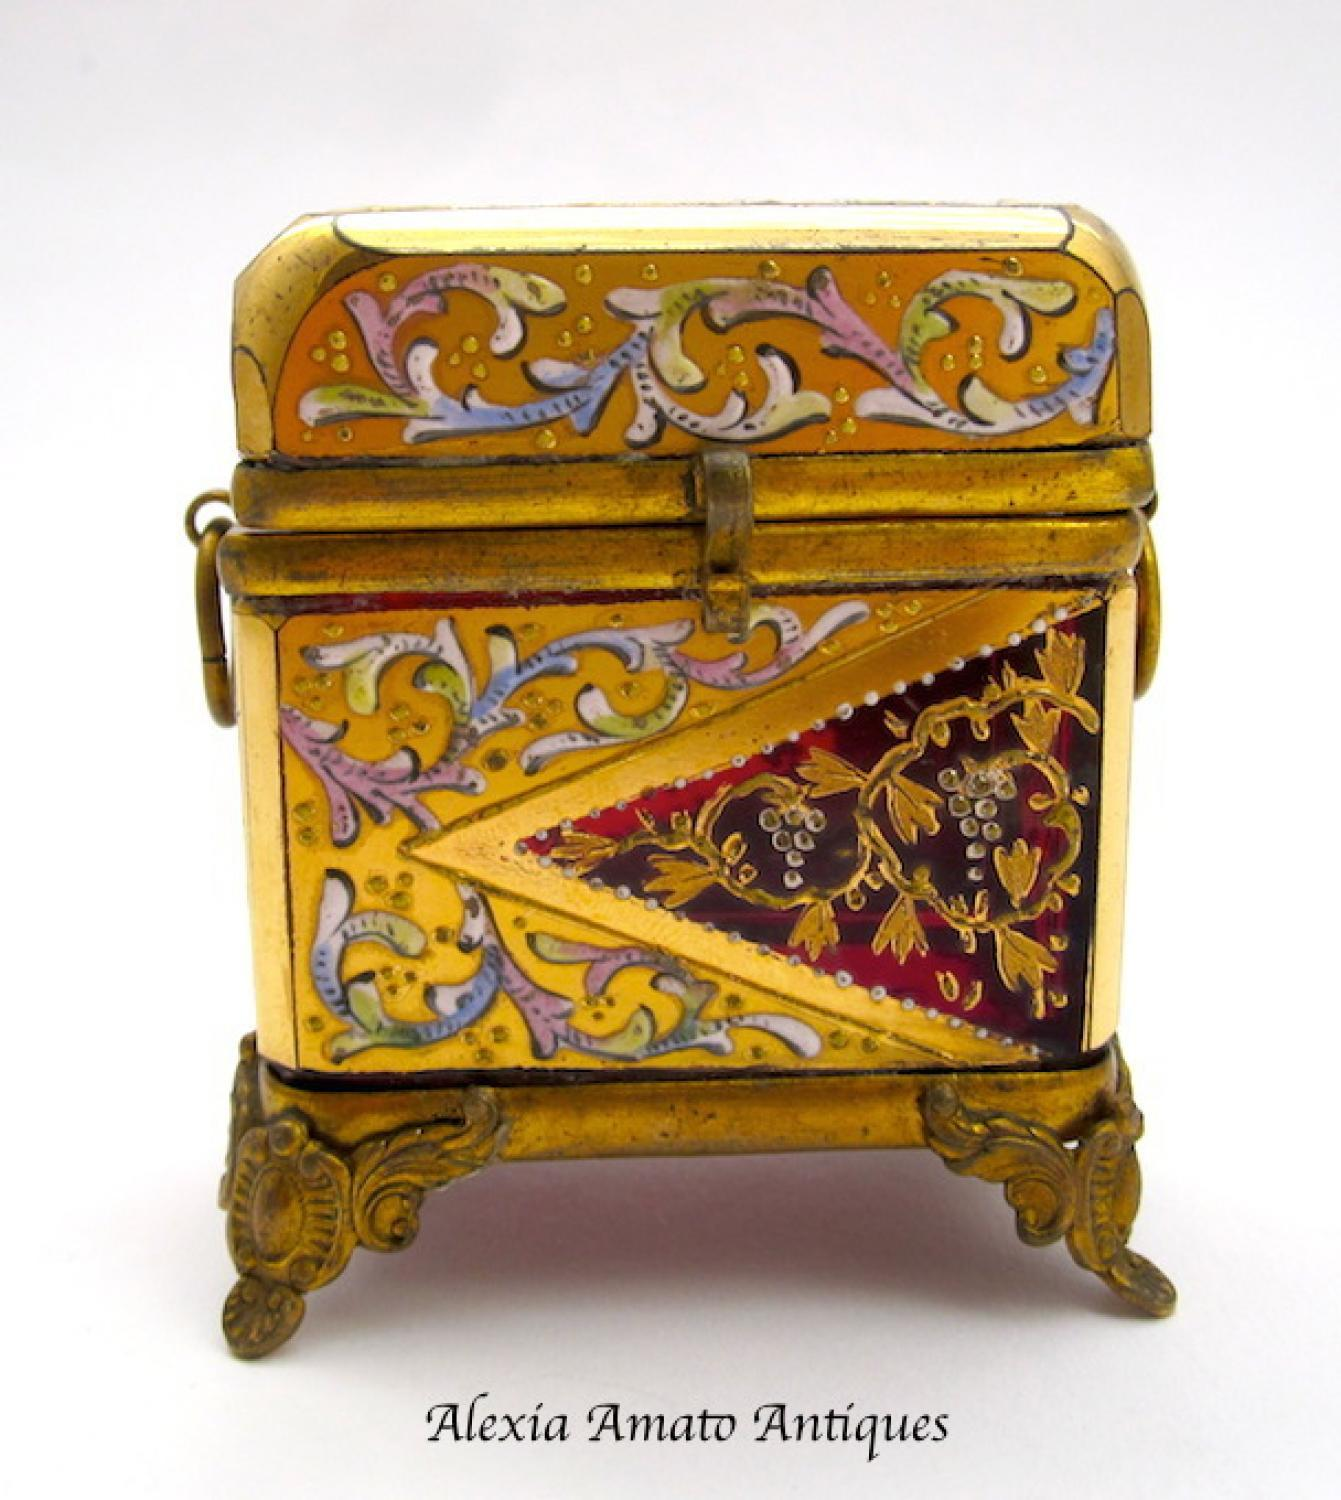 Miniature Antique MOSER Casket Box